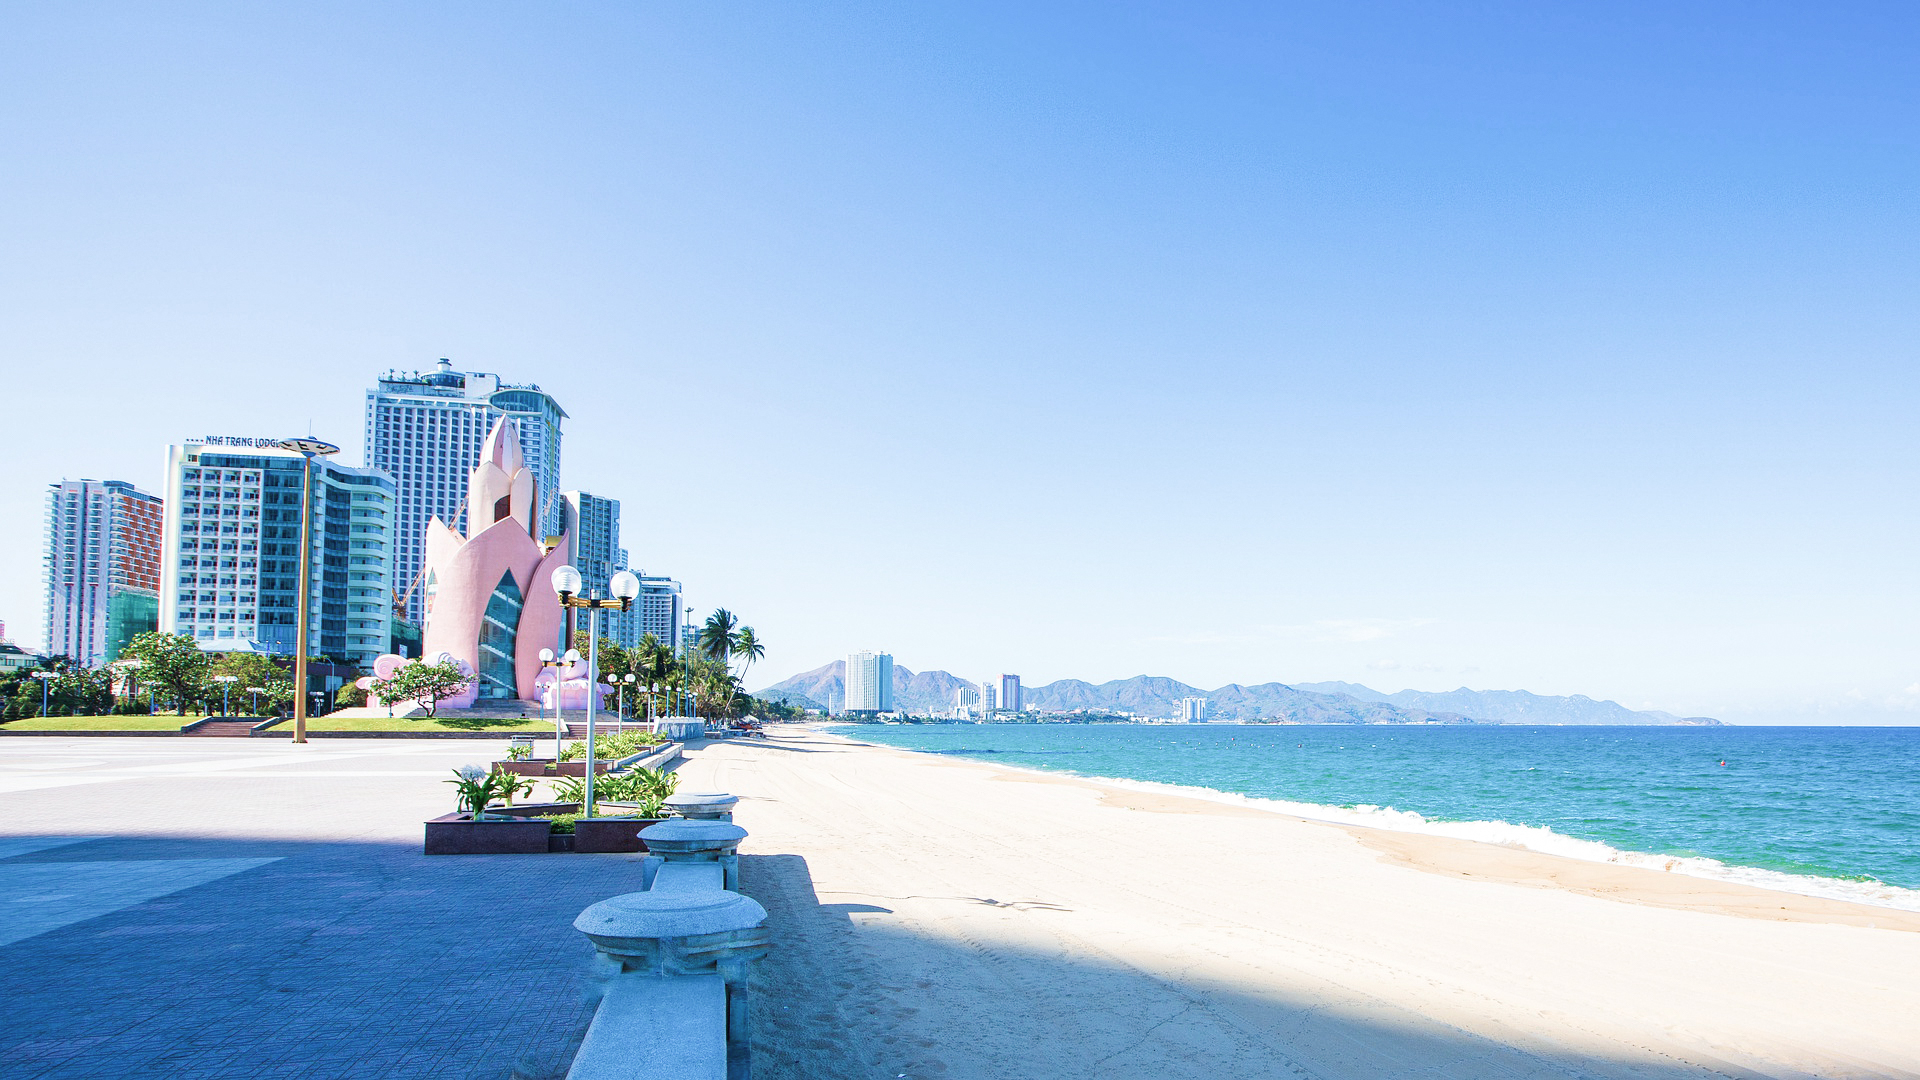 KHANH HOA TOURISM BRAND STRATEGY IN THE PERIOD OF 2021-2025